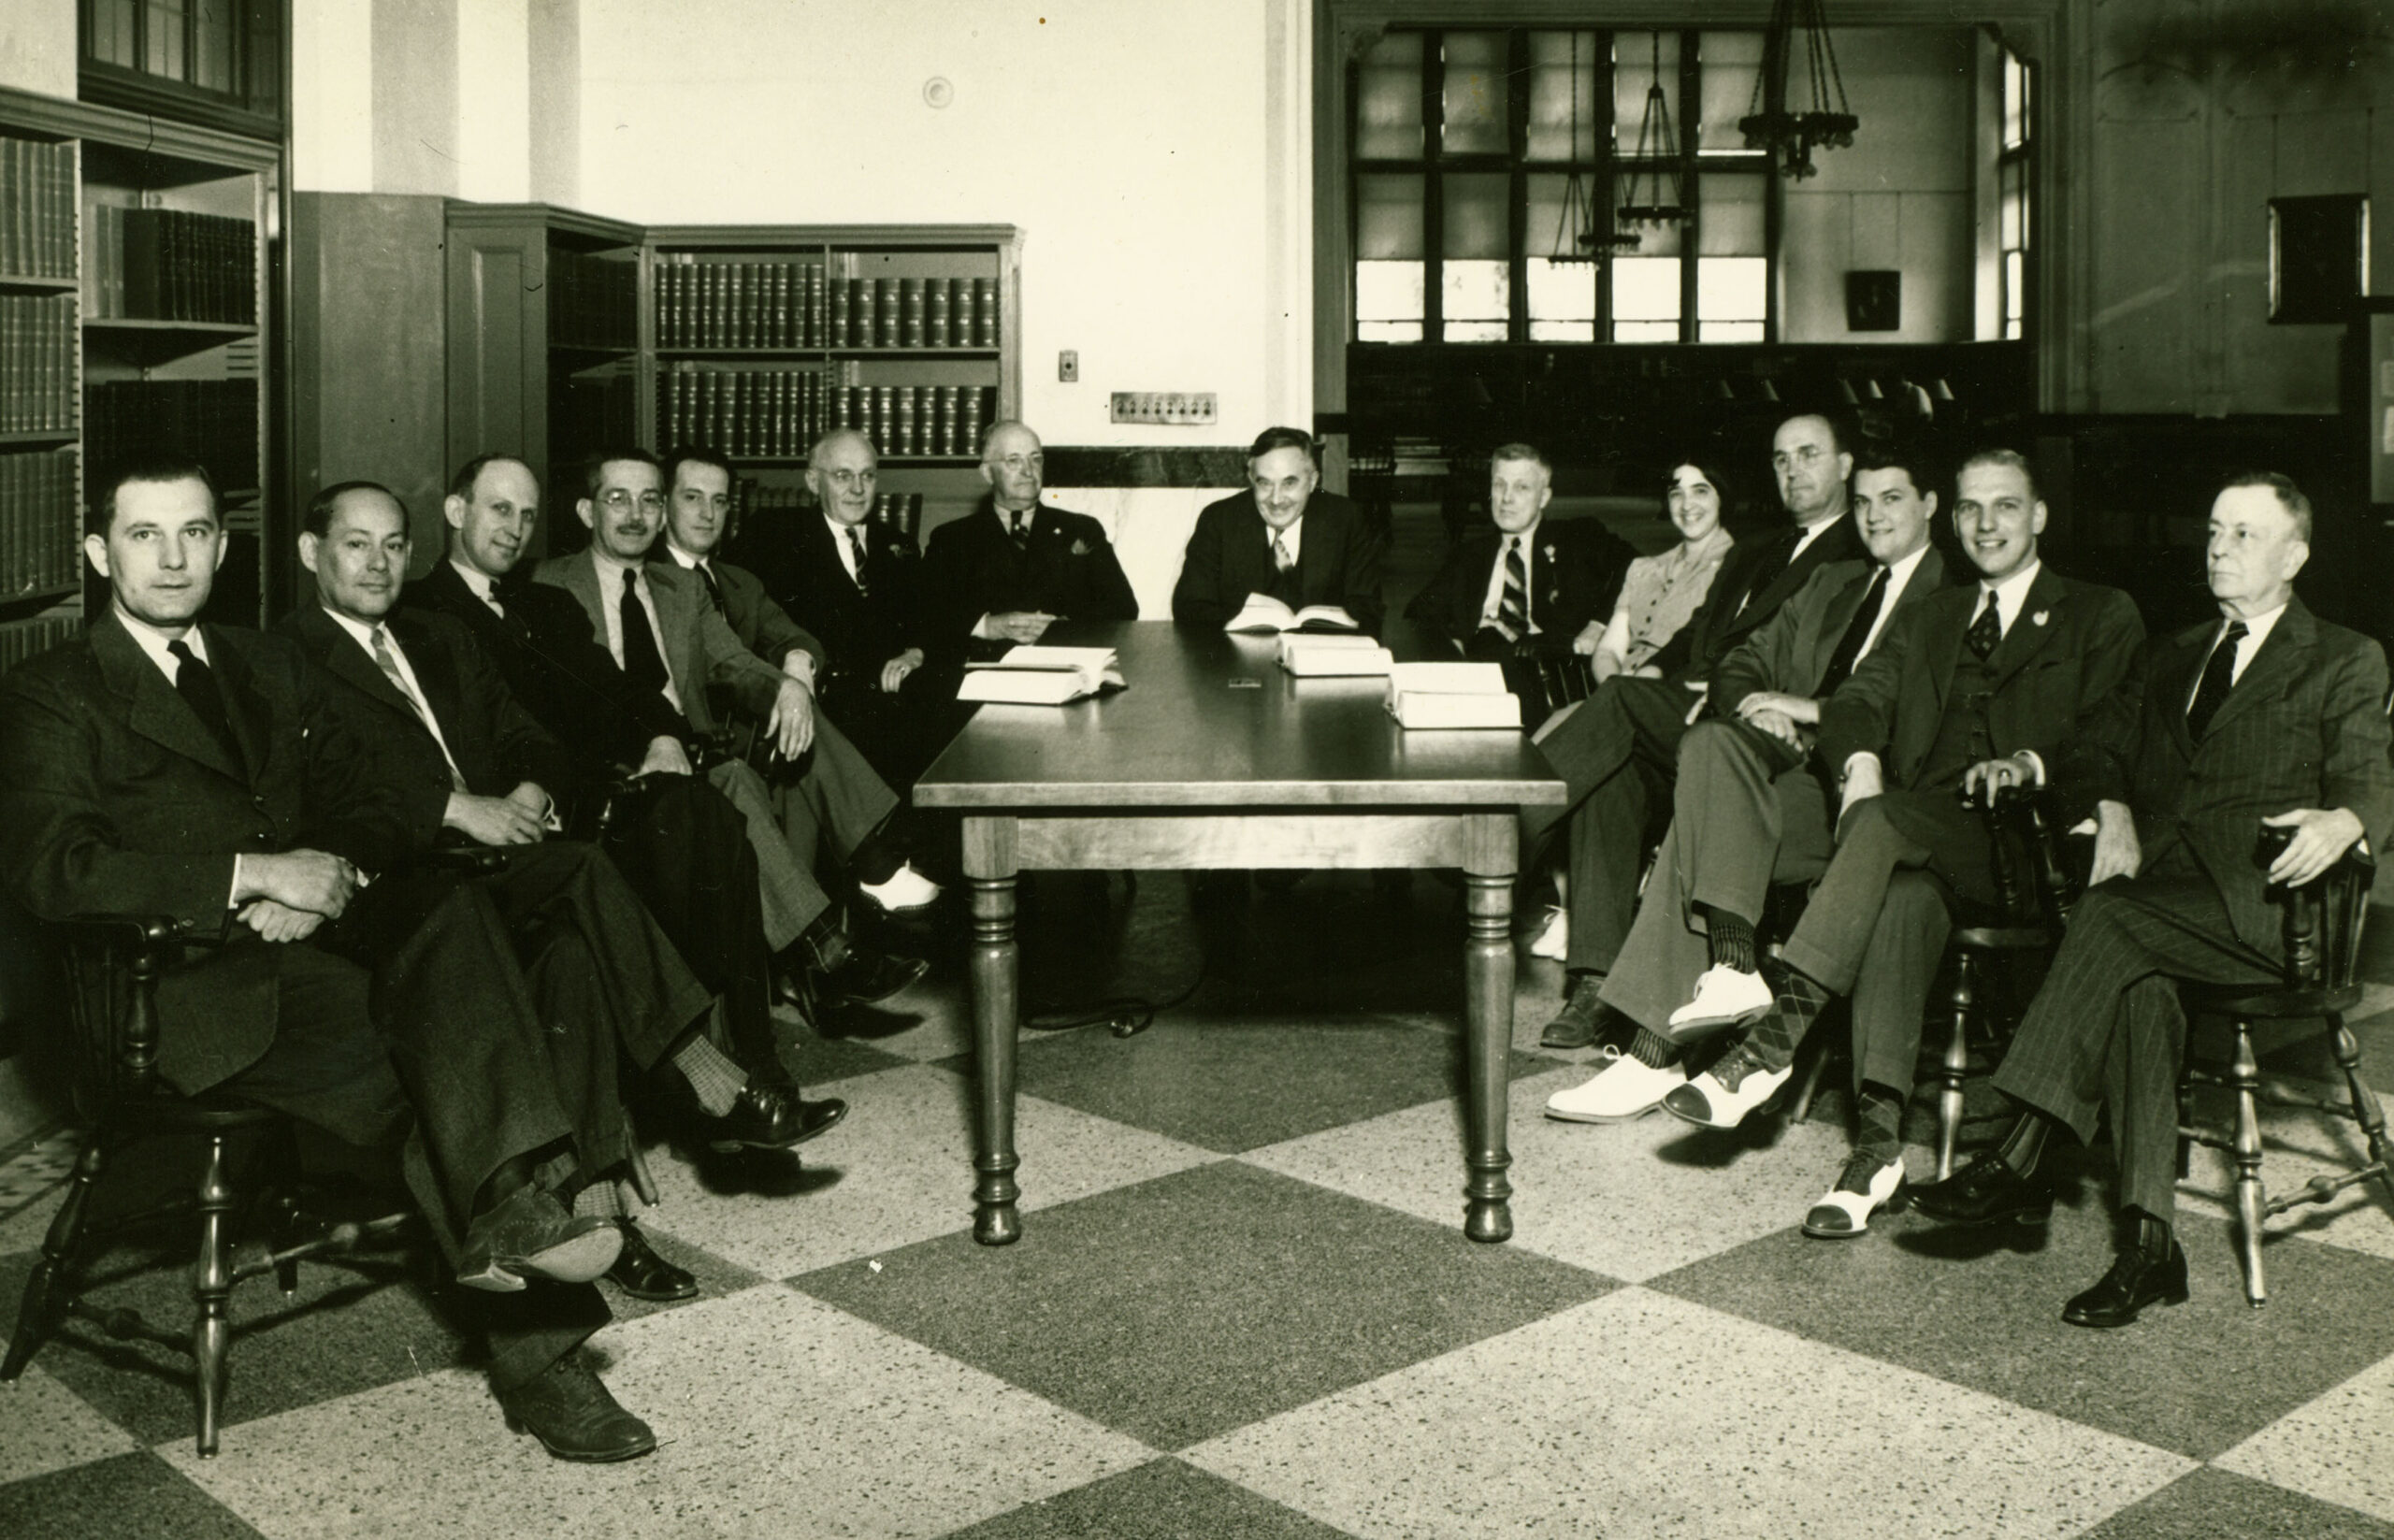 Mary Funk with male staff, circa 1940